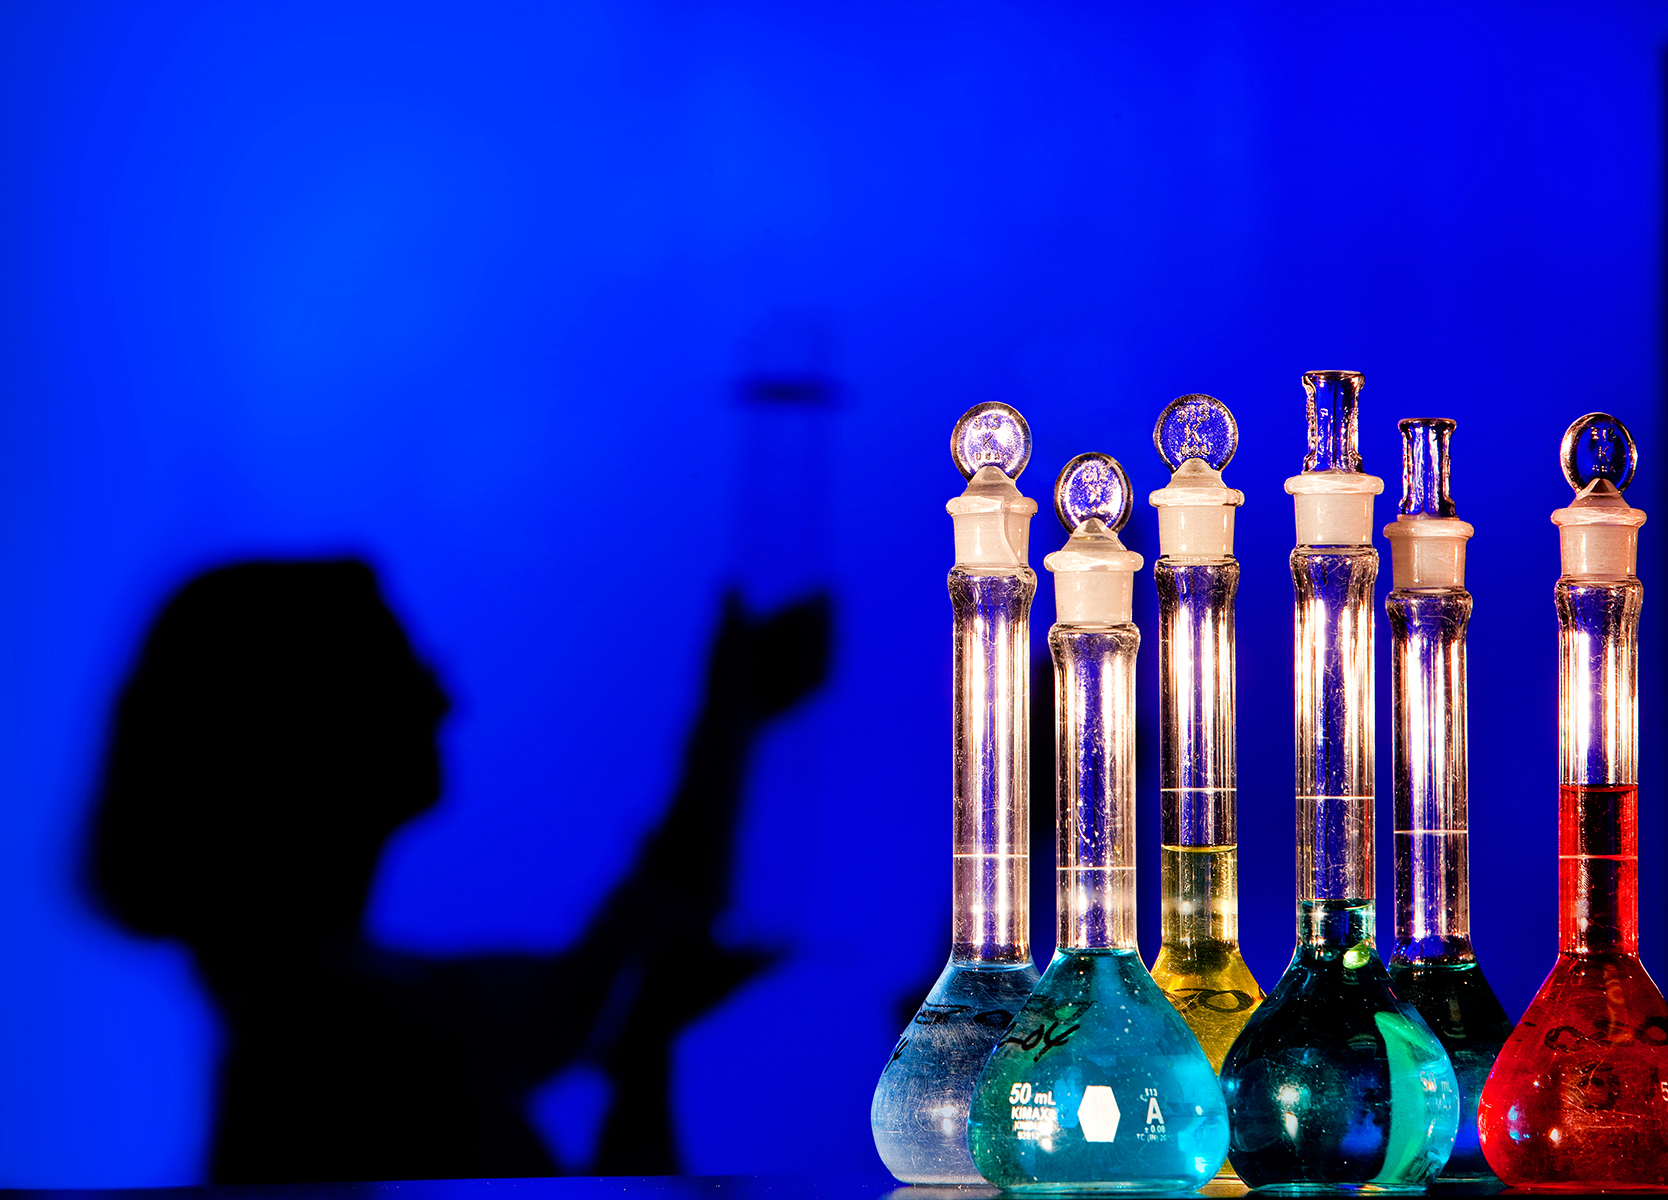 A silhouetted woman in the background of the image balances the bright liquid-filled lab flasks at a biomedical engineering firm that specializes in antimicrobial, odor control, and surface modification technologies. The photo has bright colors, including a cobalt blue background.